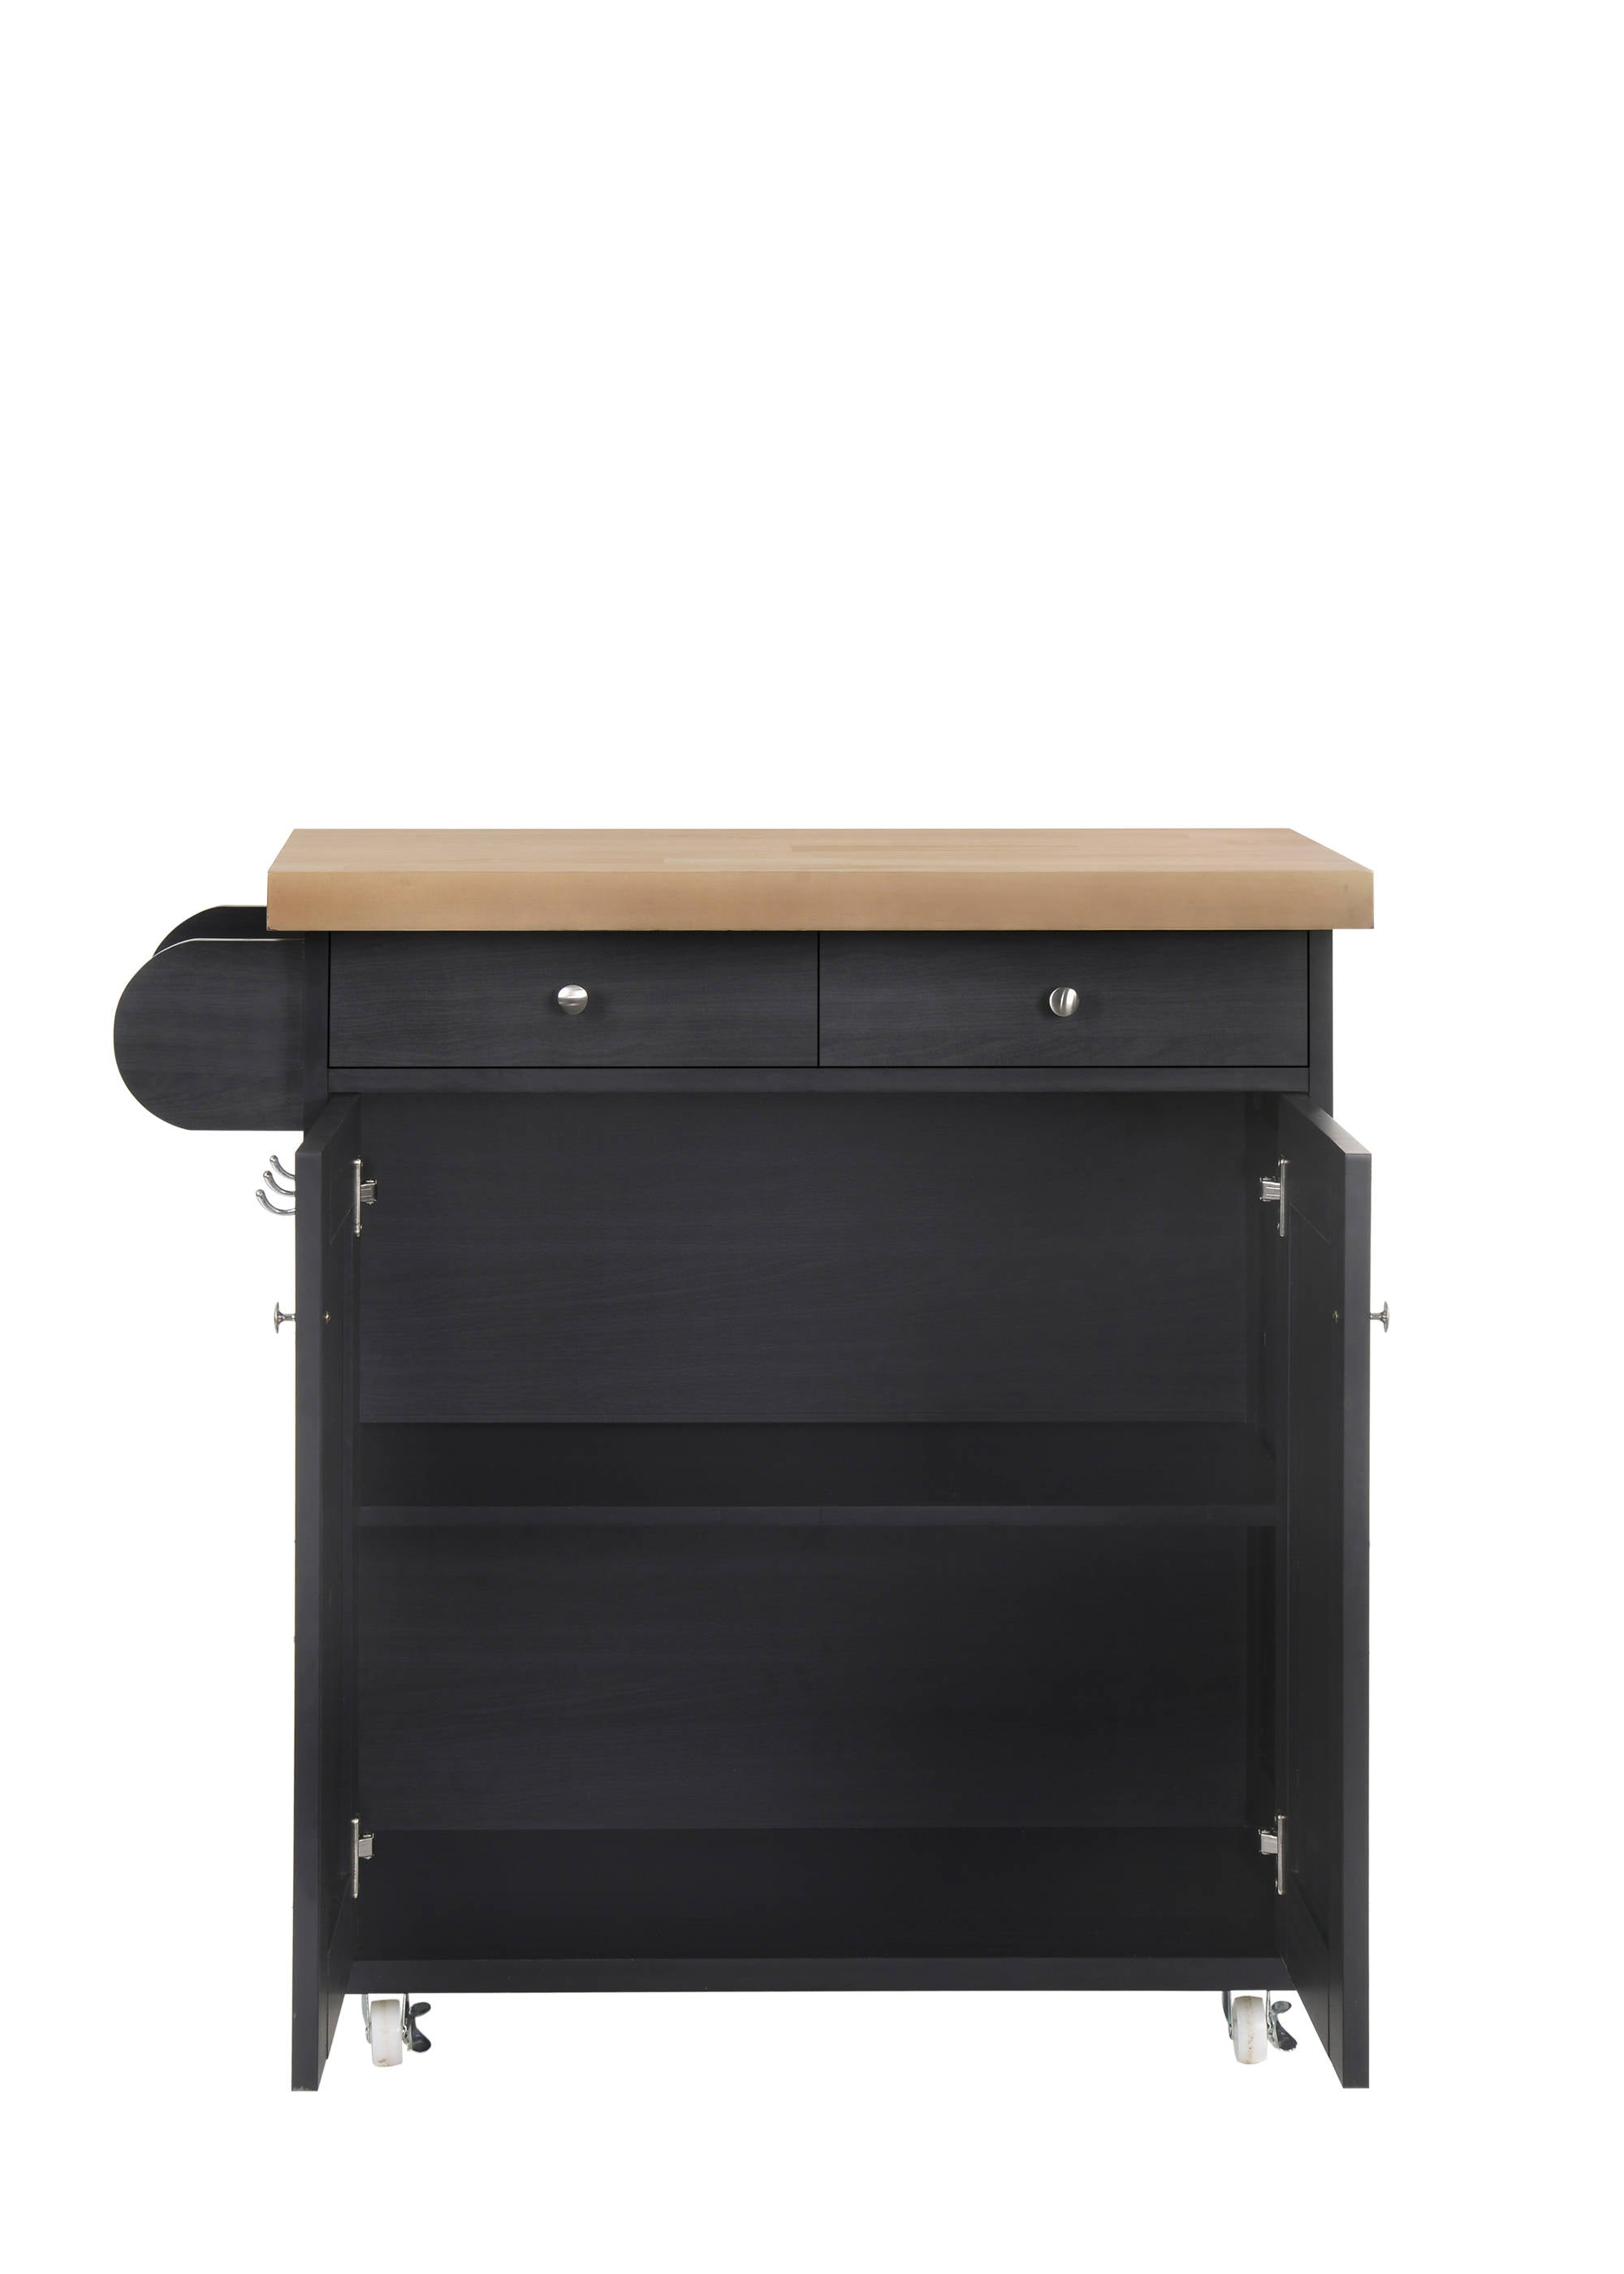 Arleta Kitchen Trolley in Black - Ezzo